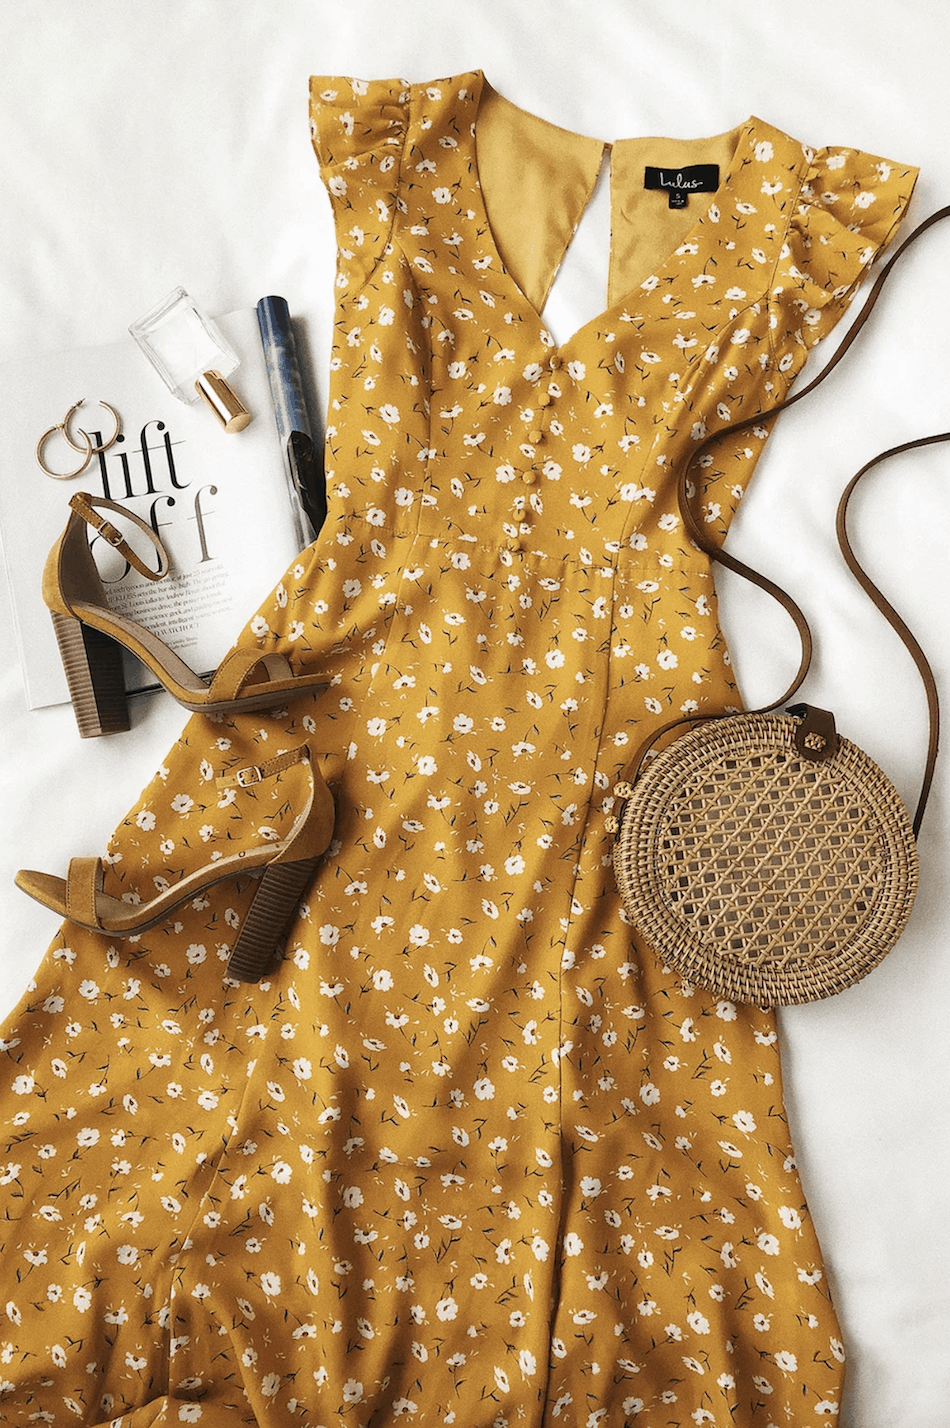 Positano Outfits Cute Maxi Dresses Fresh Picked Mustard Yellow Floral Print Backless Maxi Dress